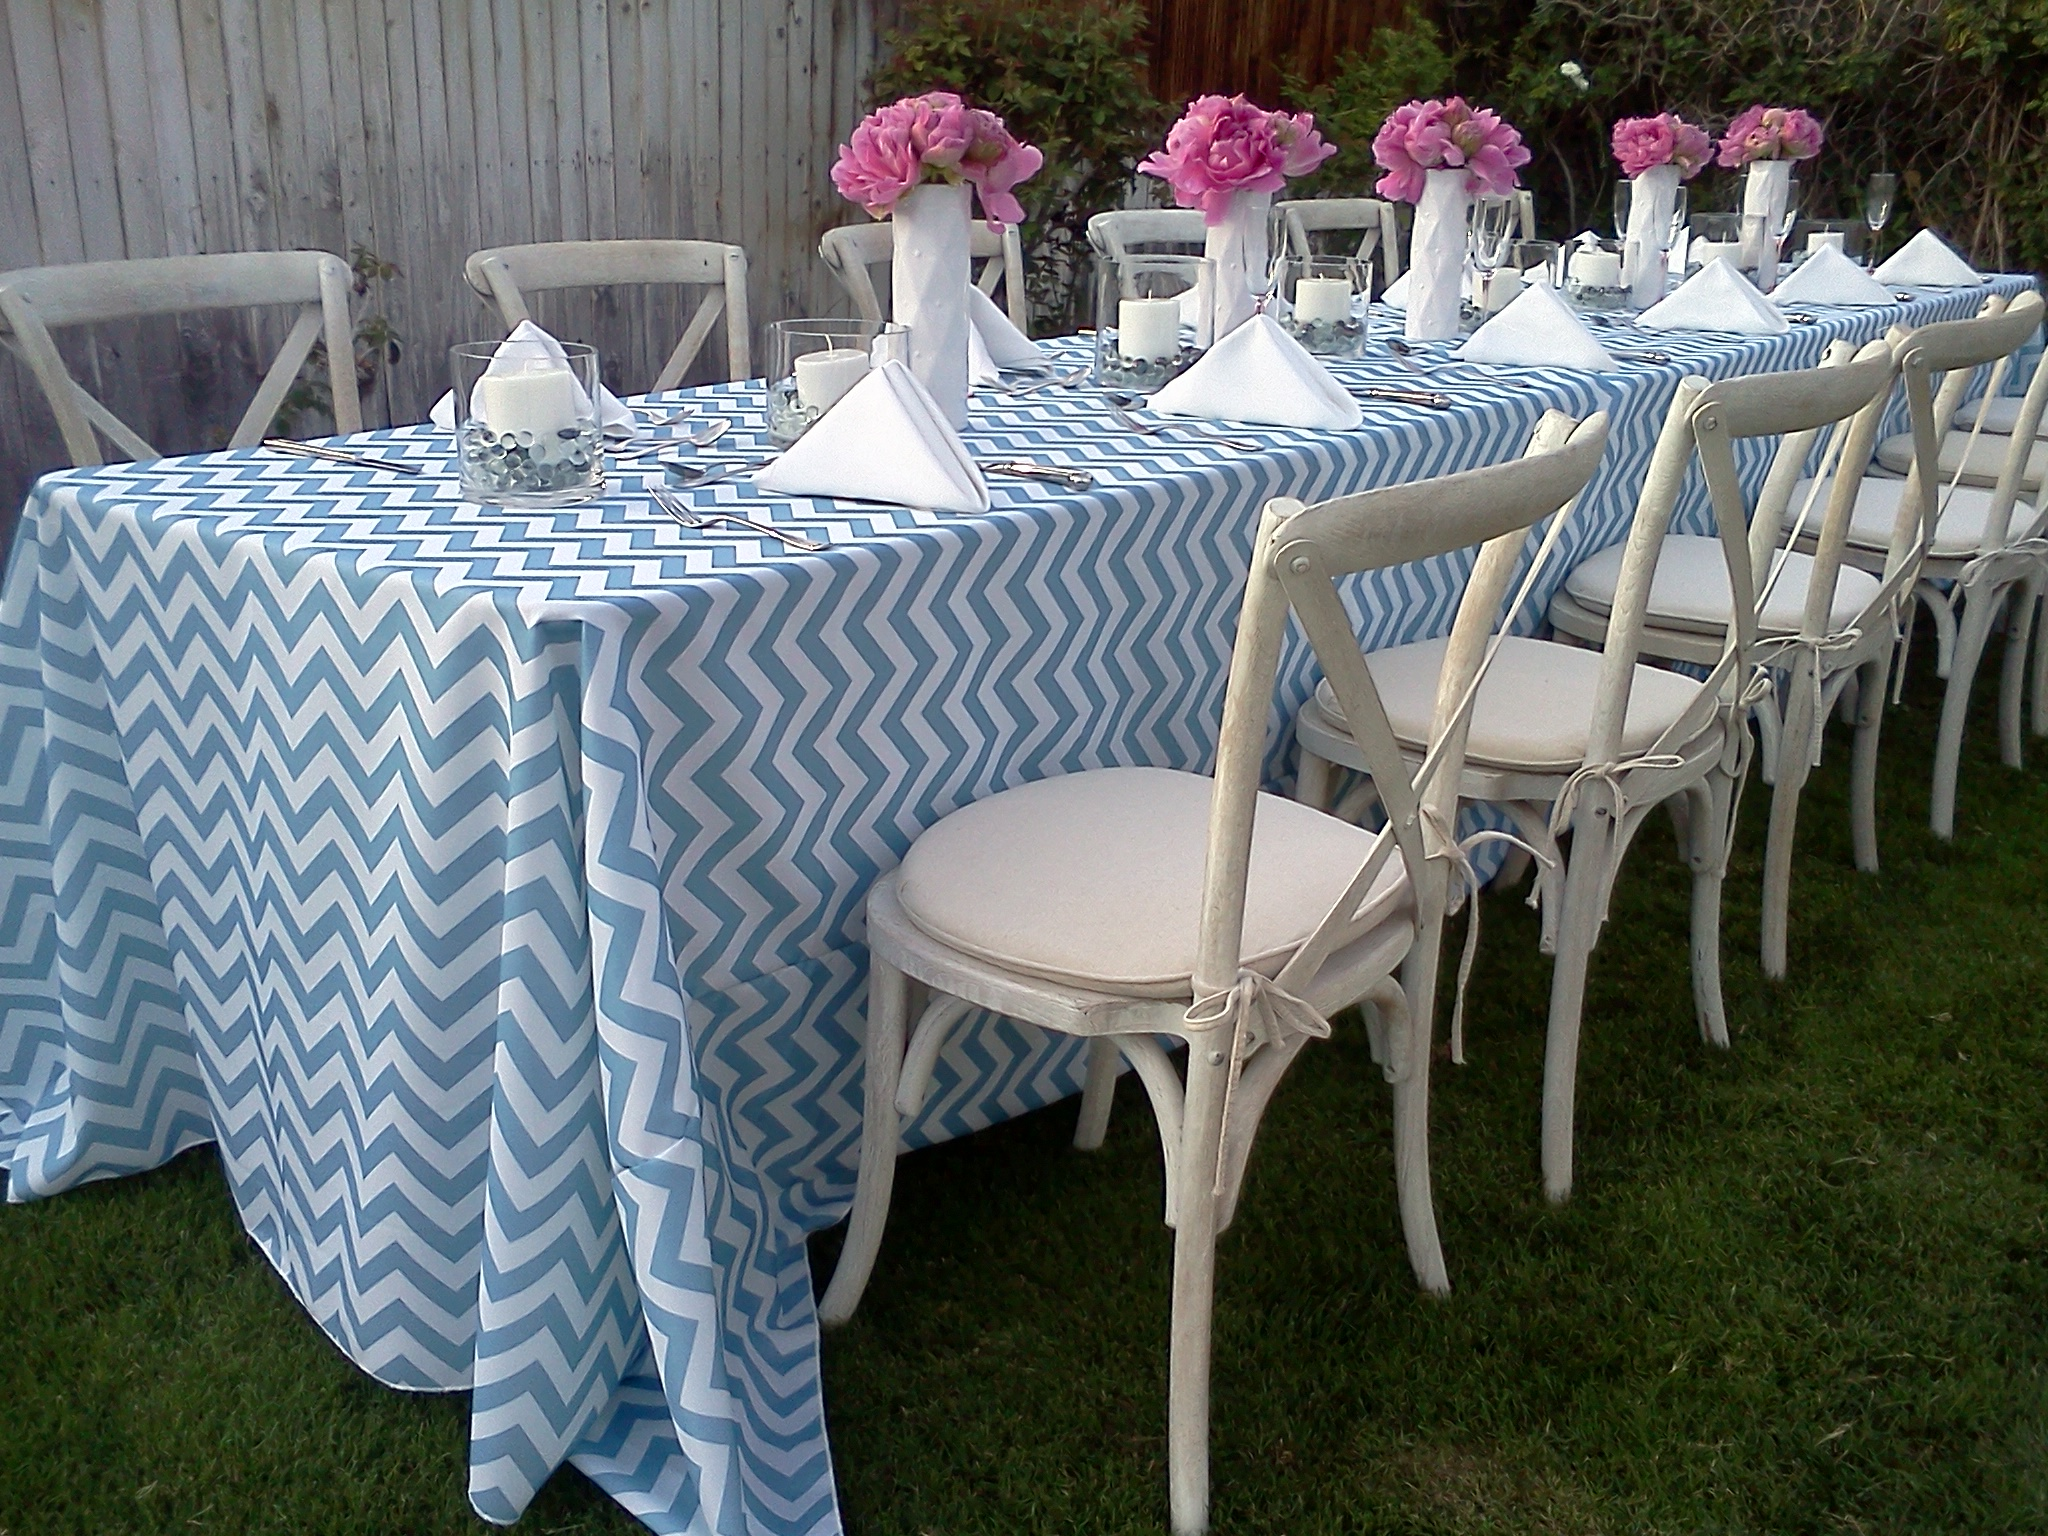 Slate Blue Chevron Table Linen Rental Tablecloth